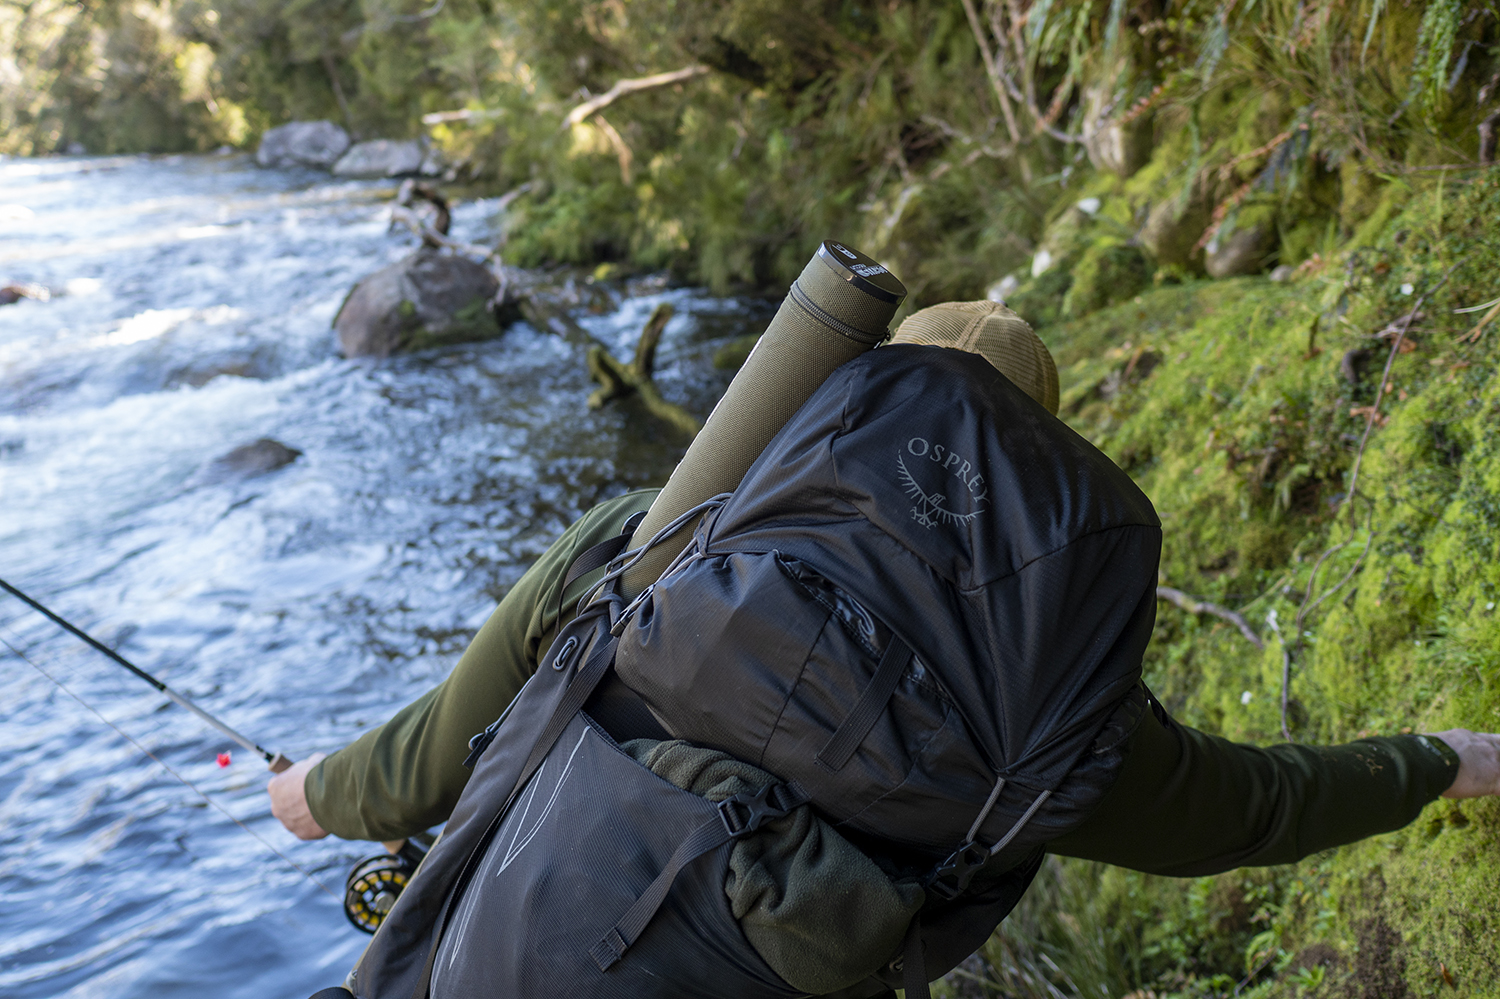 Dave Grieg fishing with an Osprey Aether pack